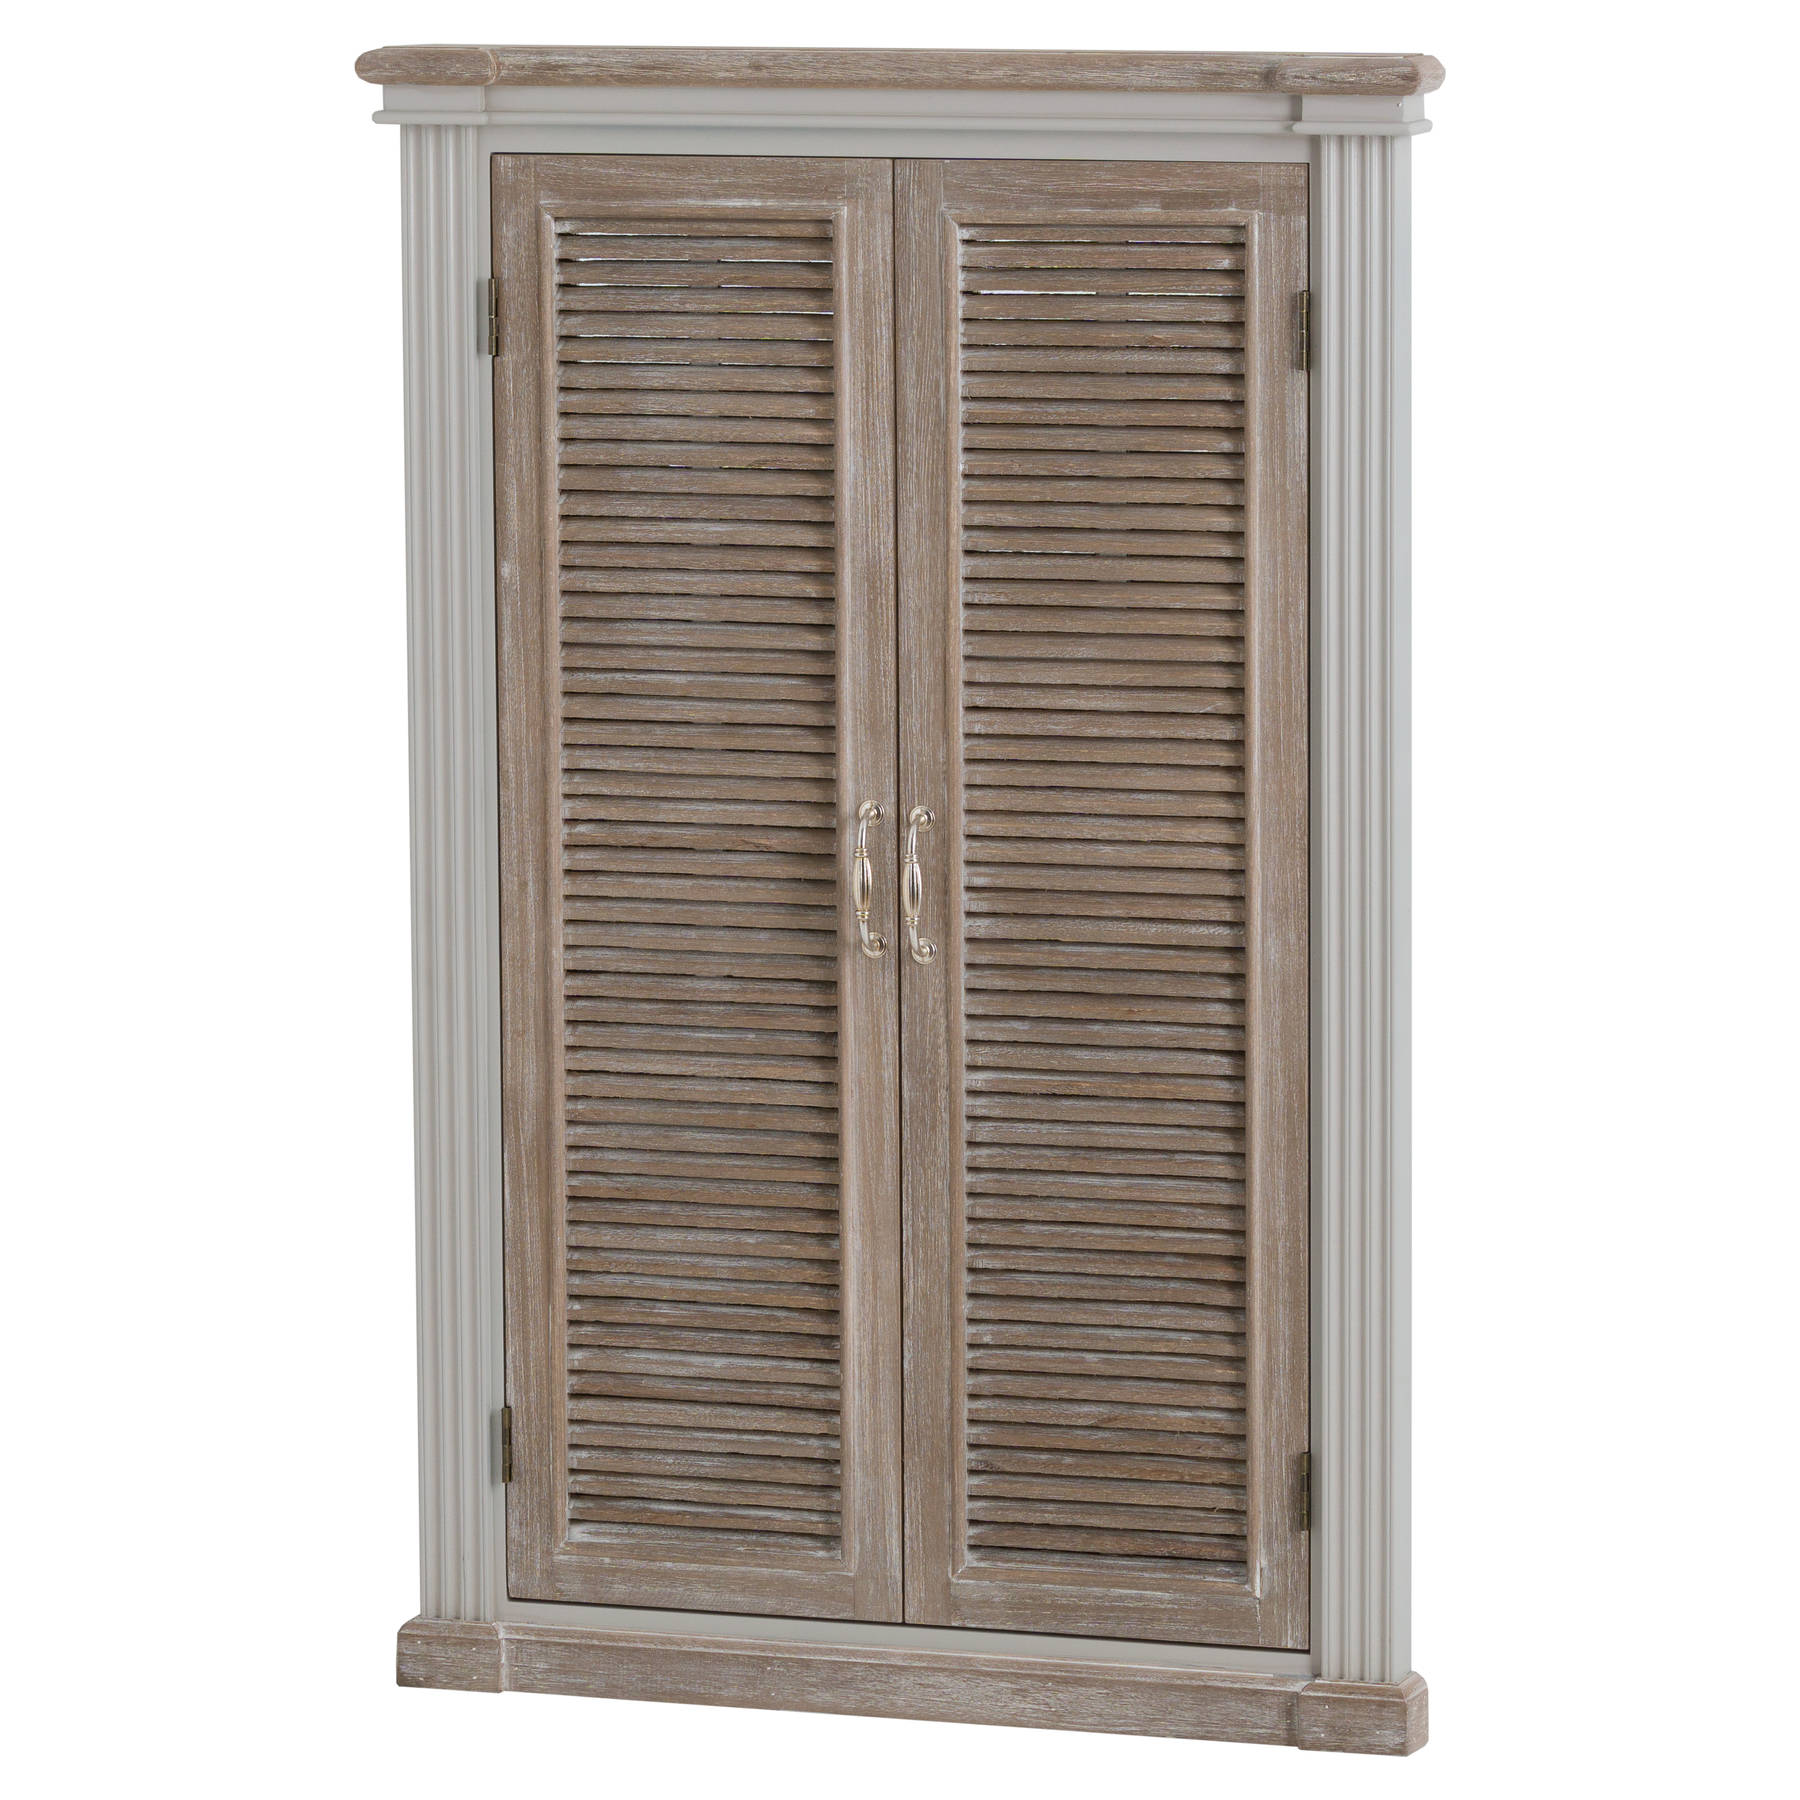 The Liberty Collection Louvered Door Mirror